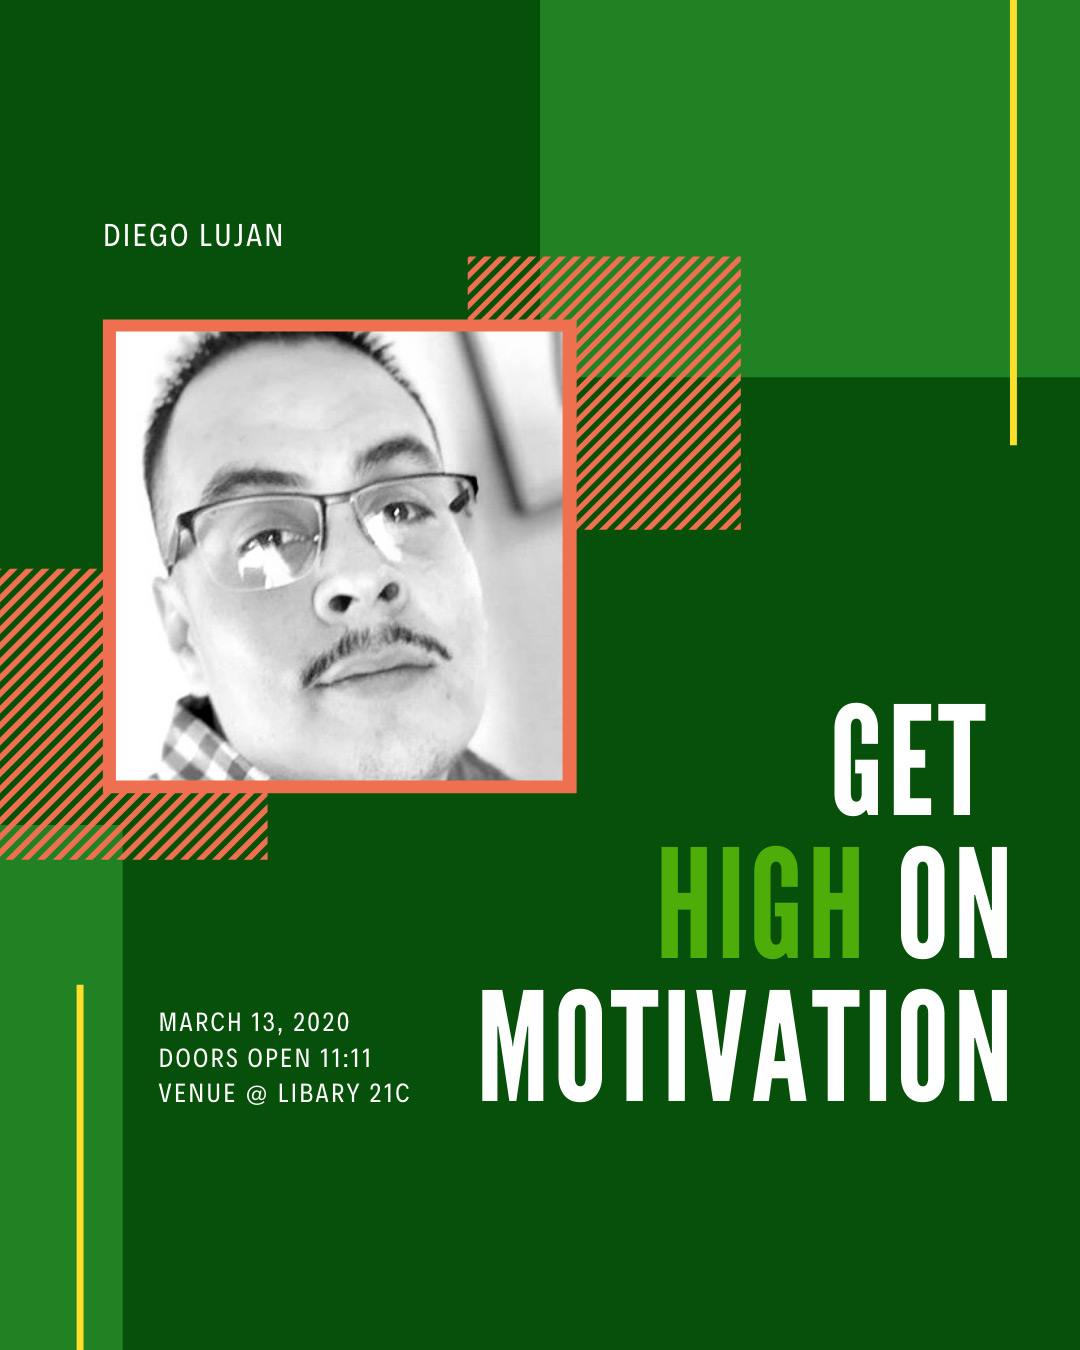 Green poster with picture of Diego Lujan